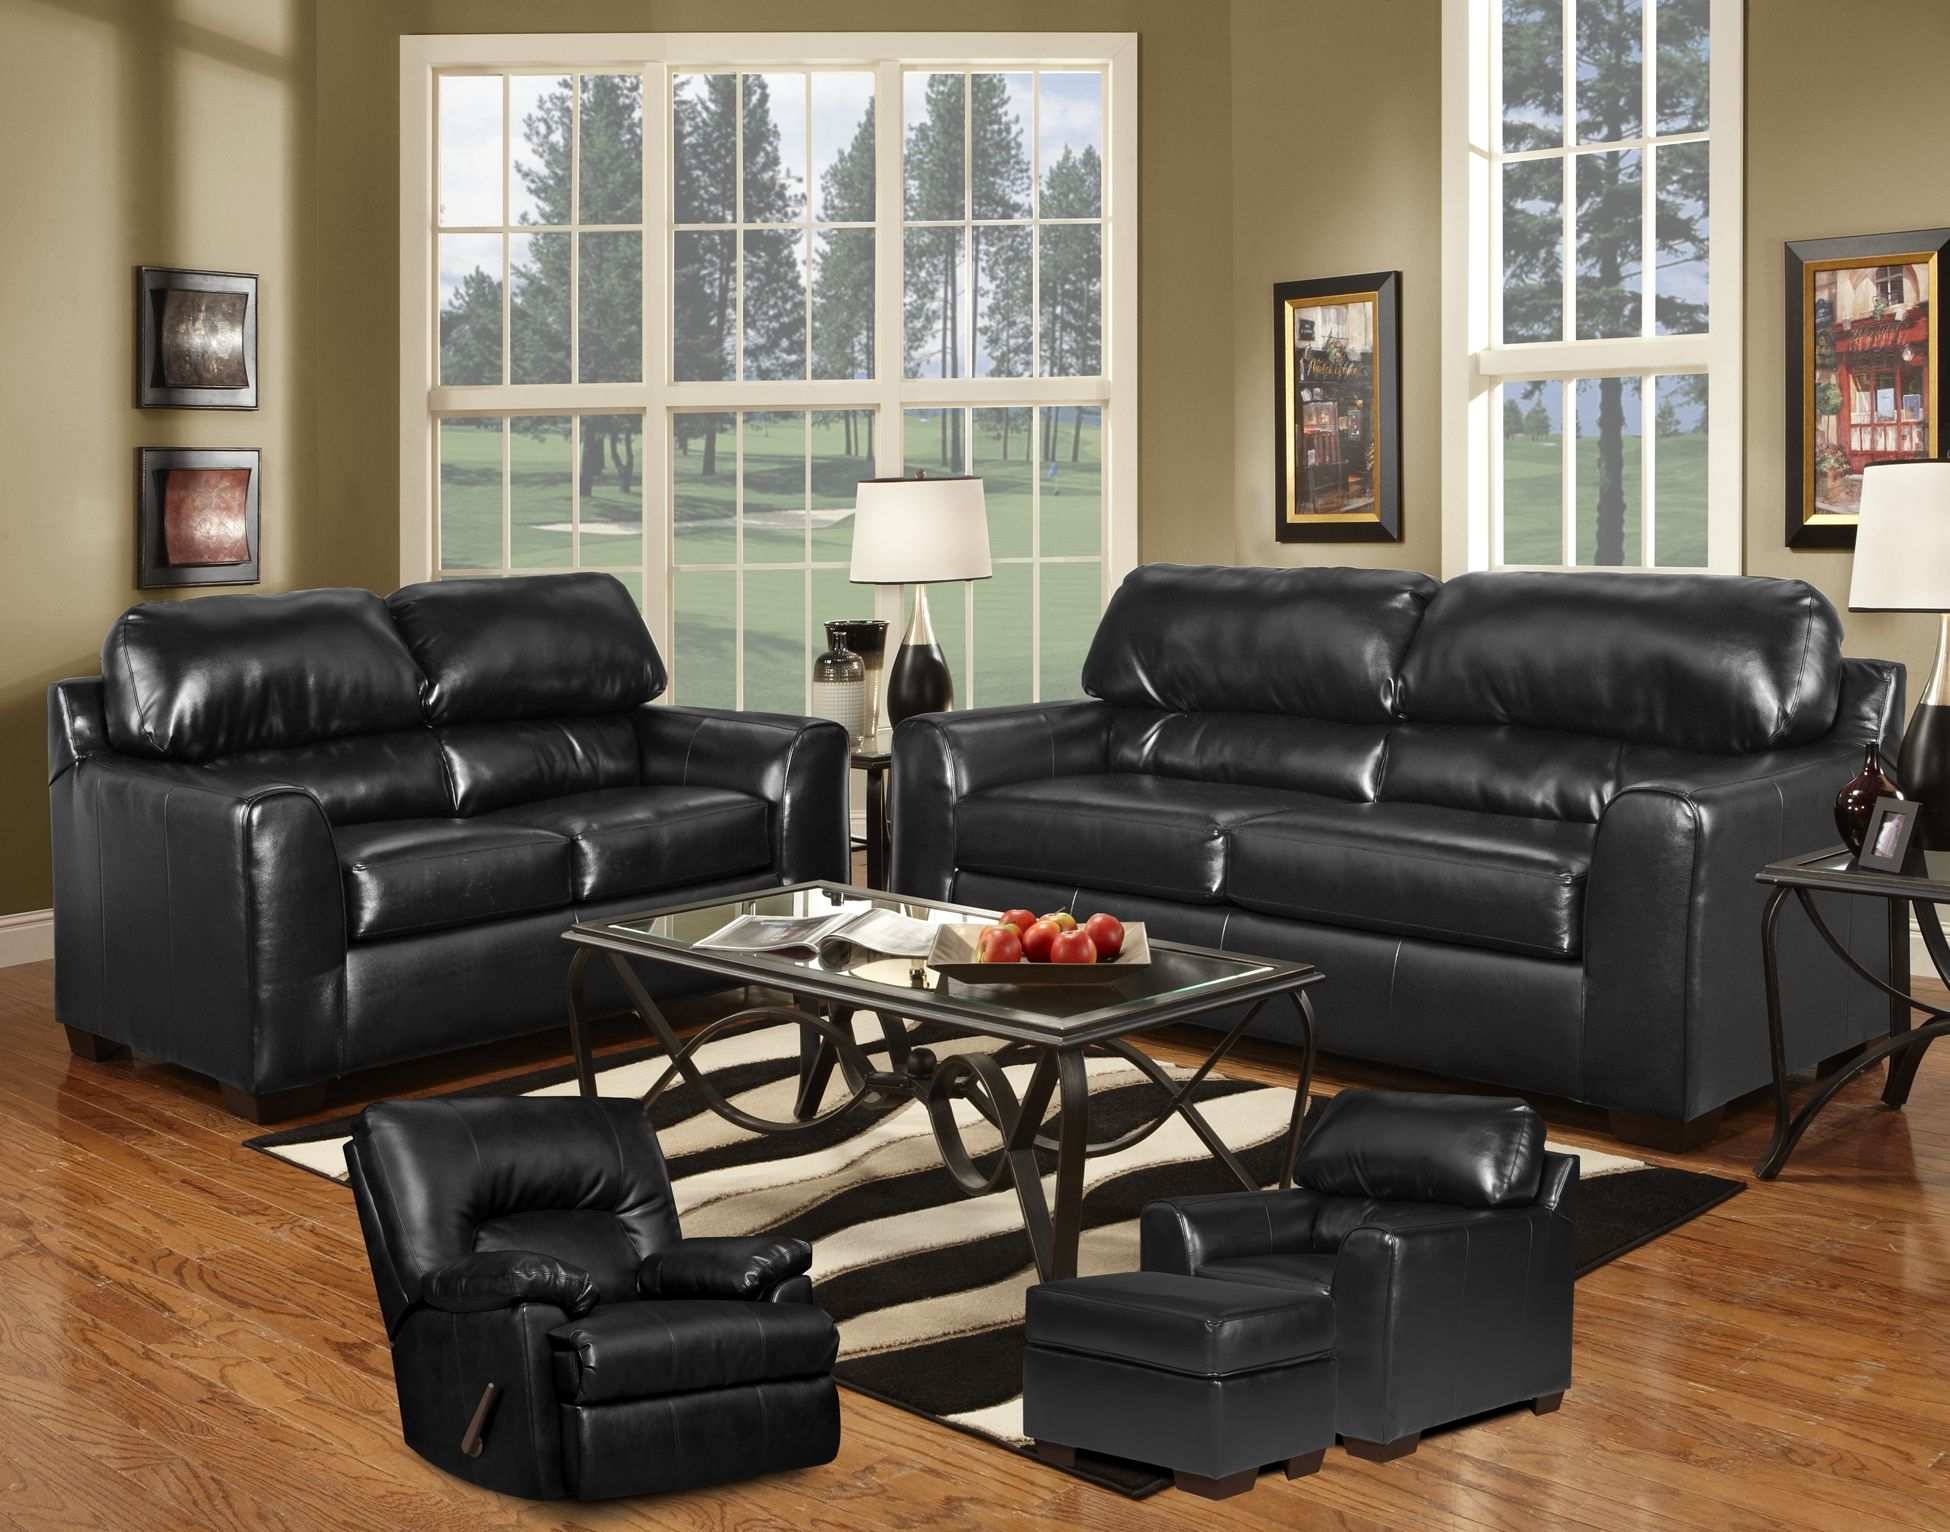 Stupendous Simmons Firenza Black Bonded Leather Sofa Loveseat Frankydiablos Diy Chair Ideas Frankydiabloscom